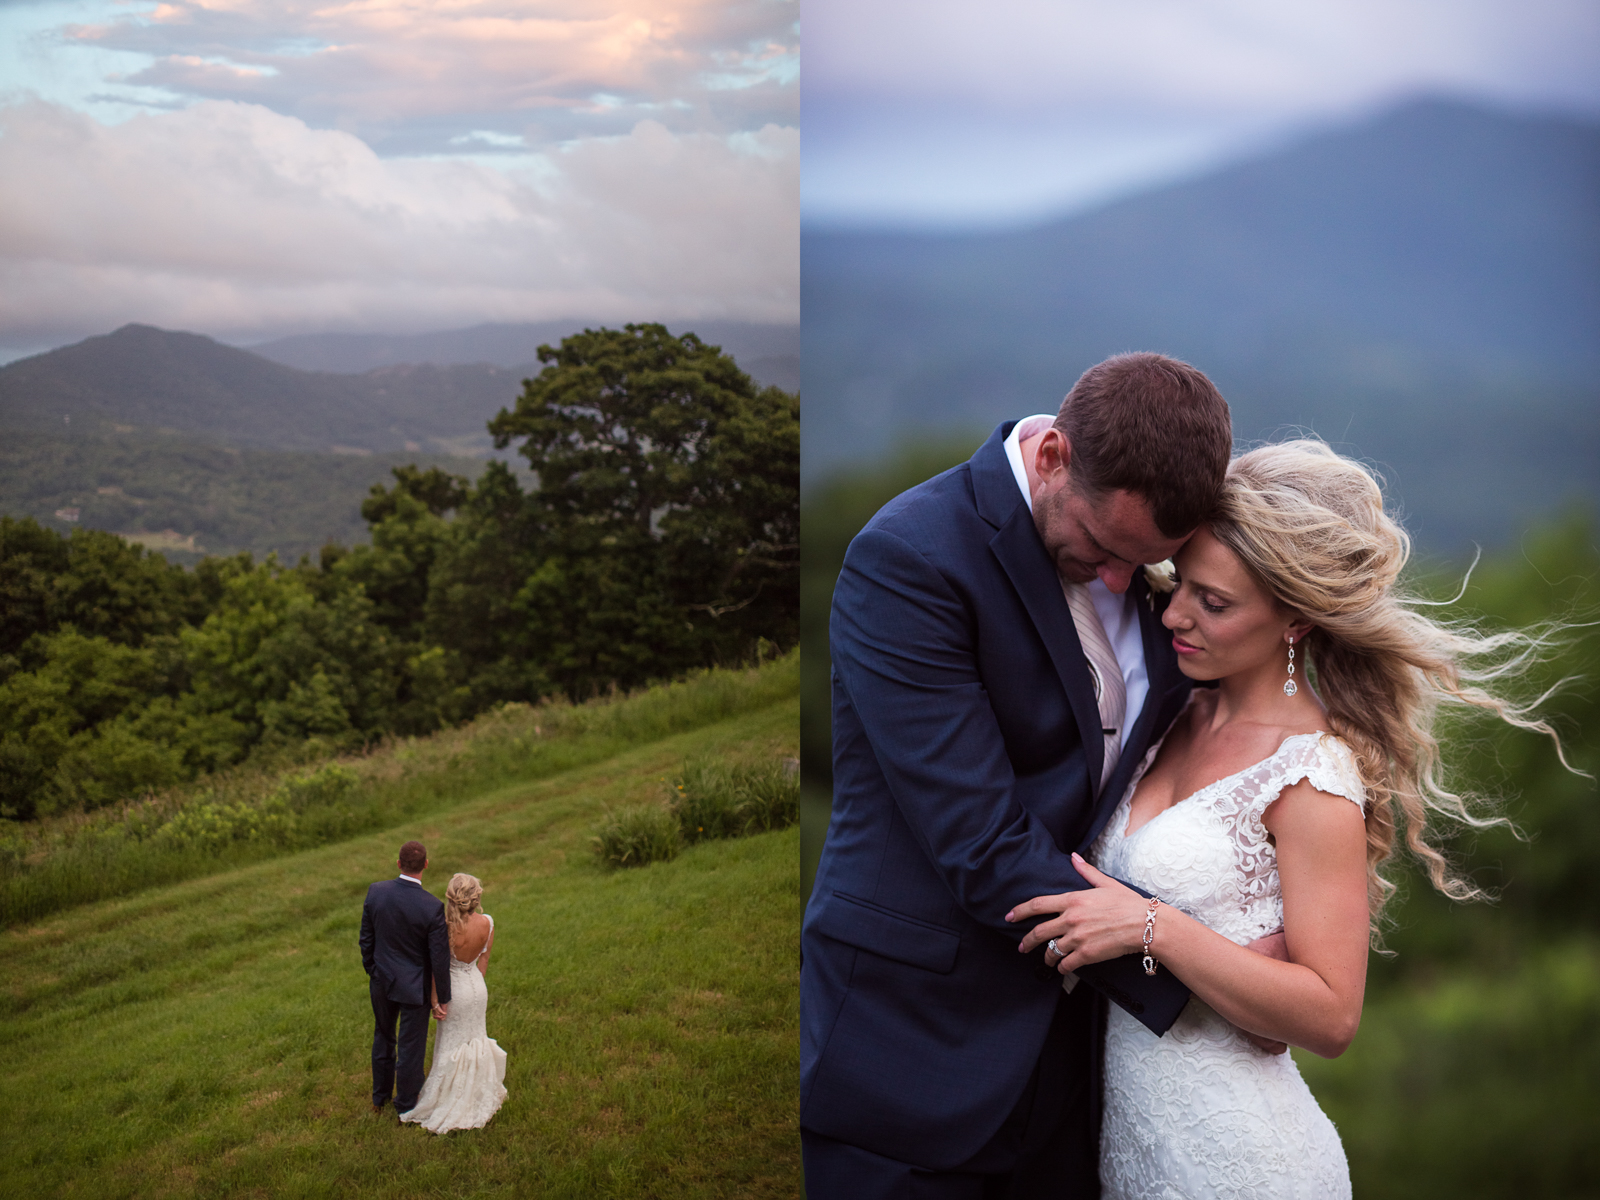 Poetry-&-Motion-High-Country-Wedding-Photography-Overlook-Barn (22 of 35).jpg